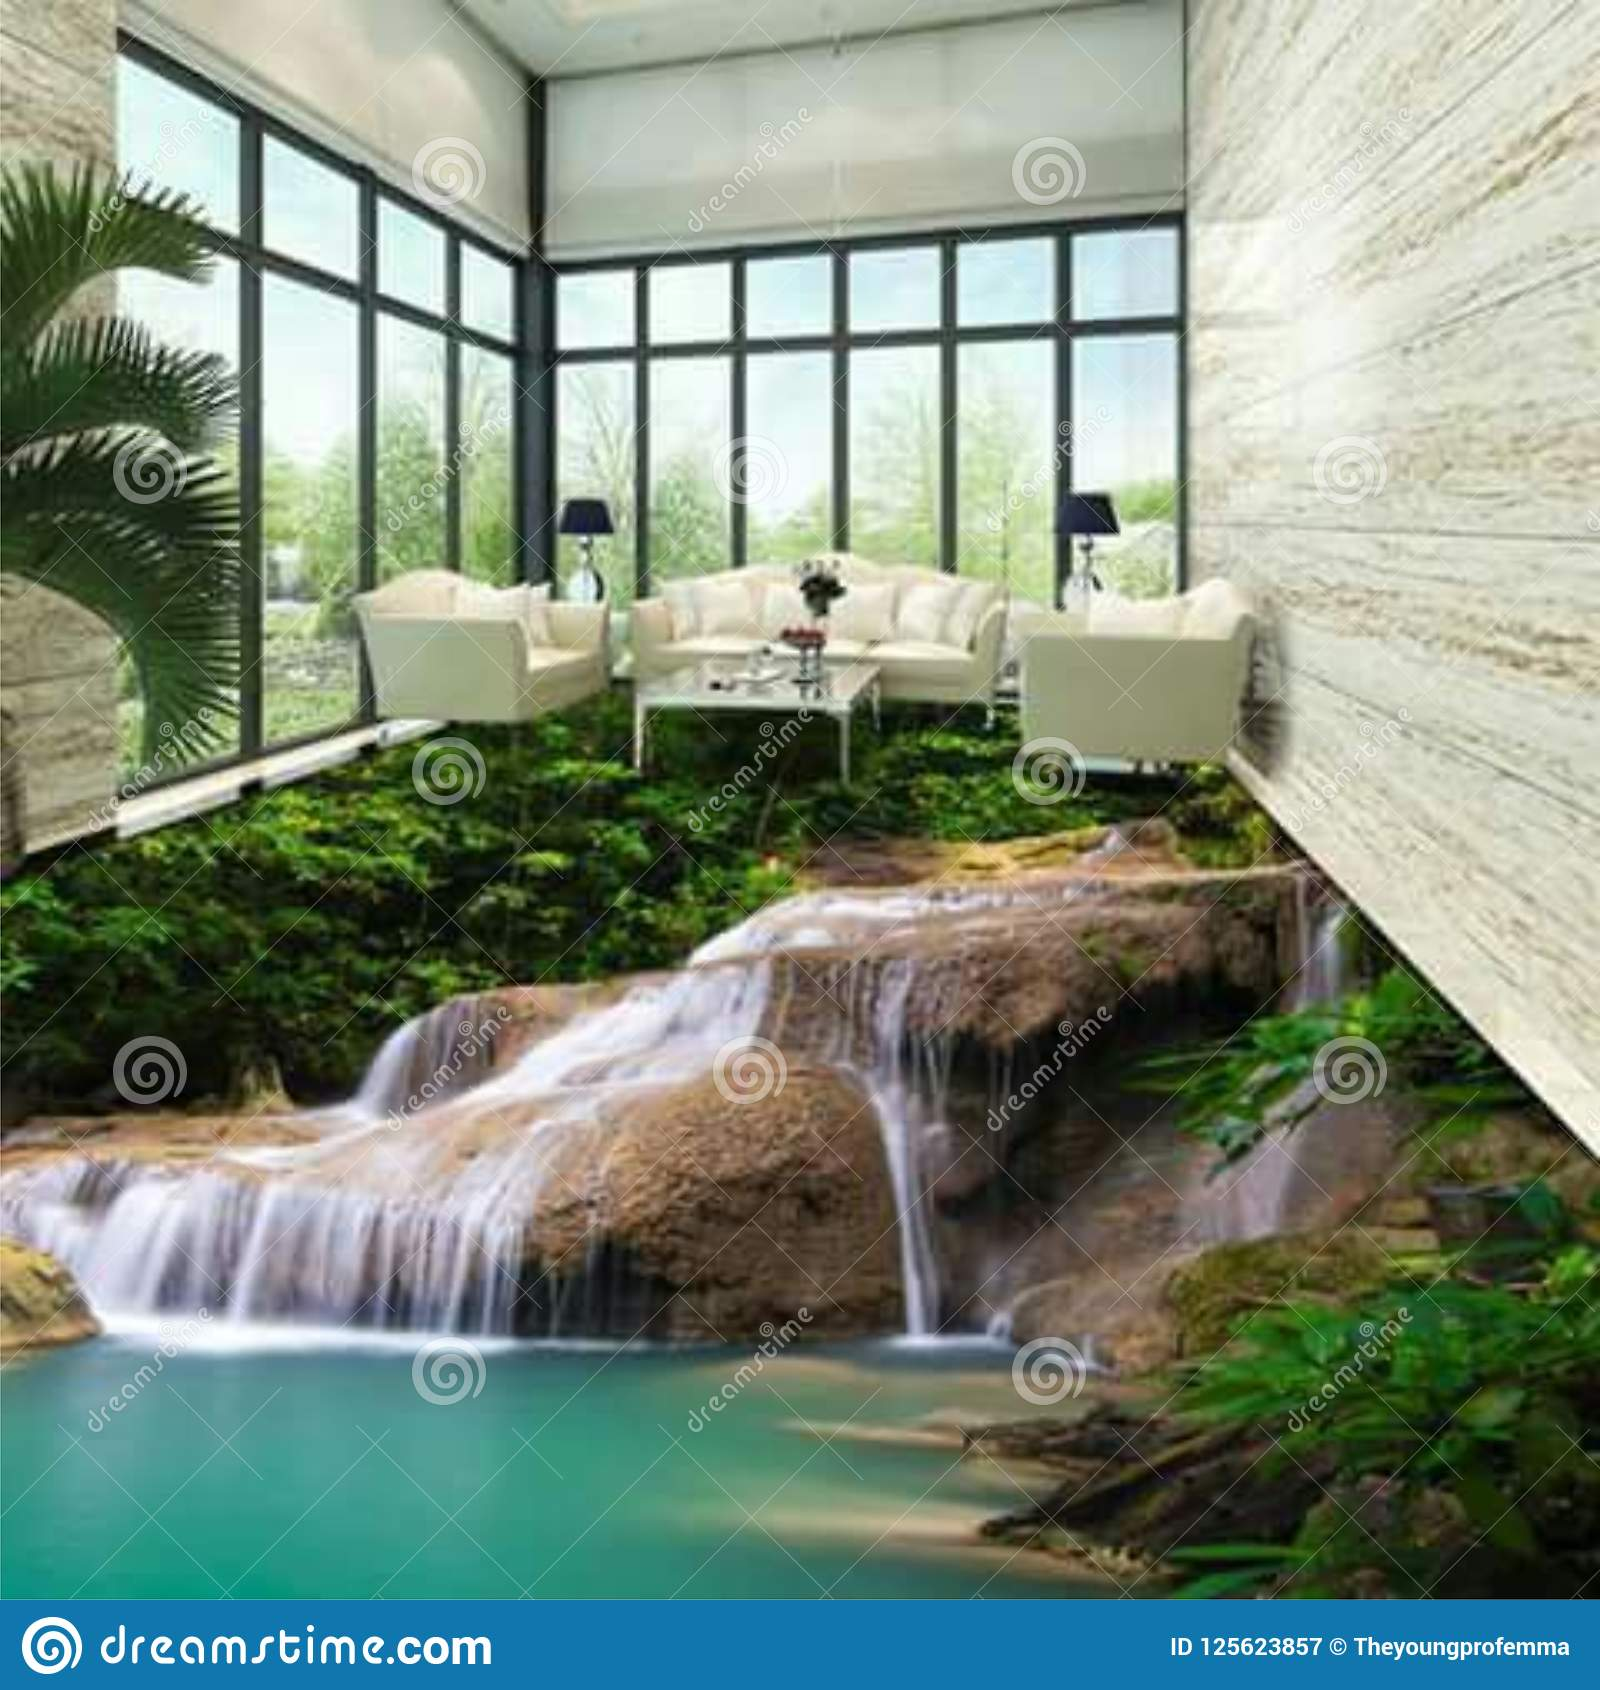 3dfloor Tiling Is Used In Door Decoration Stock Image Image Of